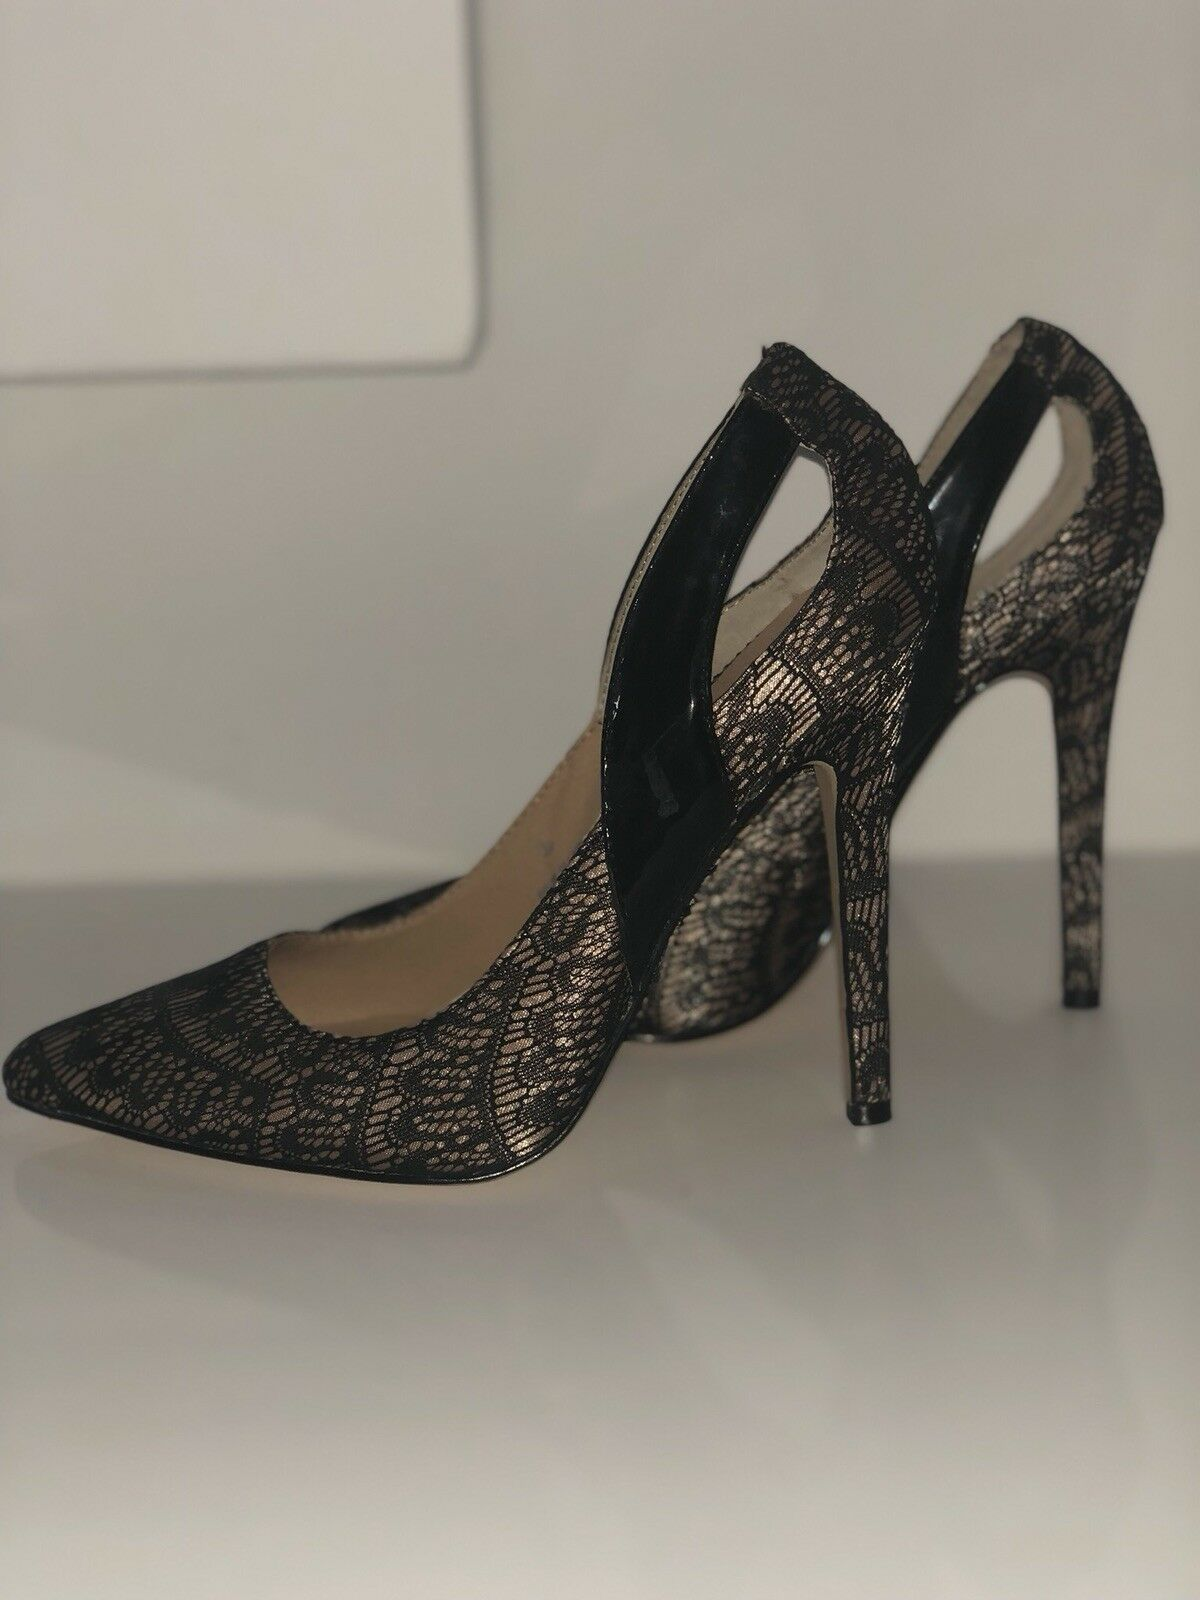 Asos Women's Pumps Heels Black Lace UK 5